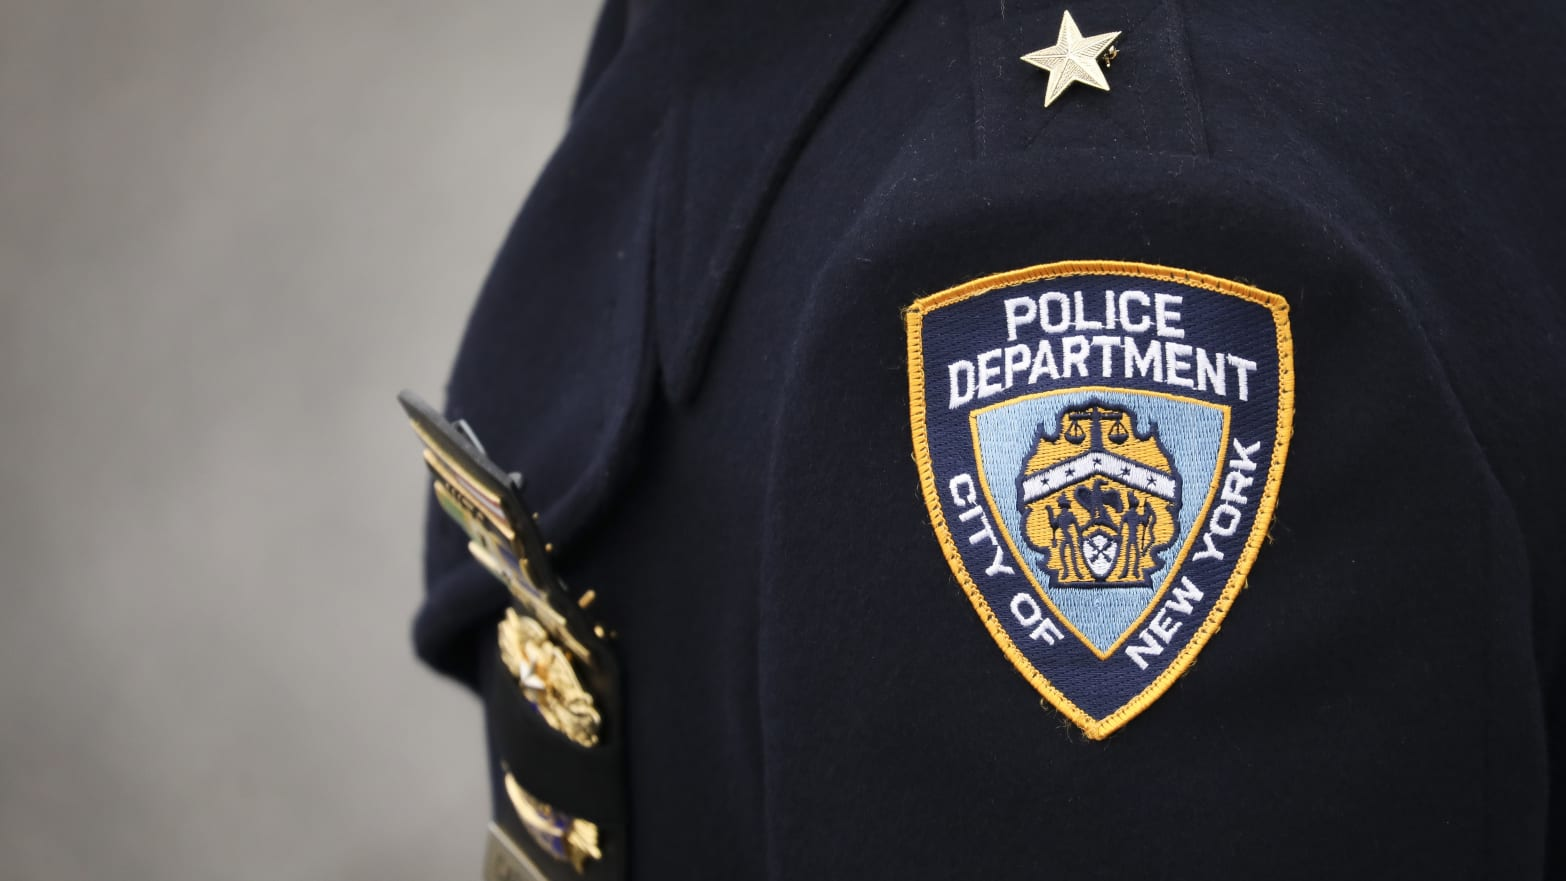 NYPD Officer Dies of Suicide, the Third Self-Inflicted Death